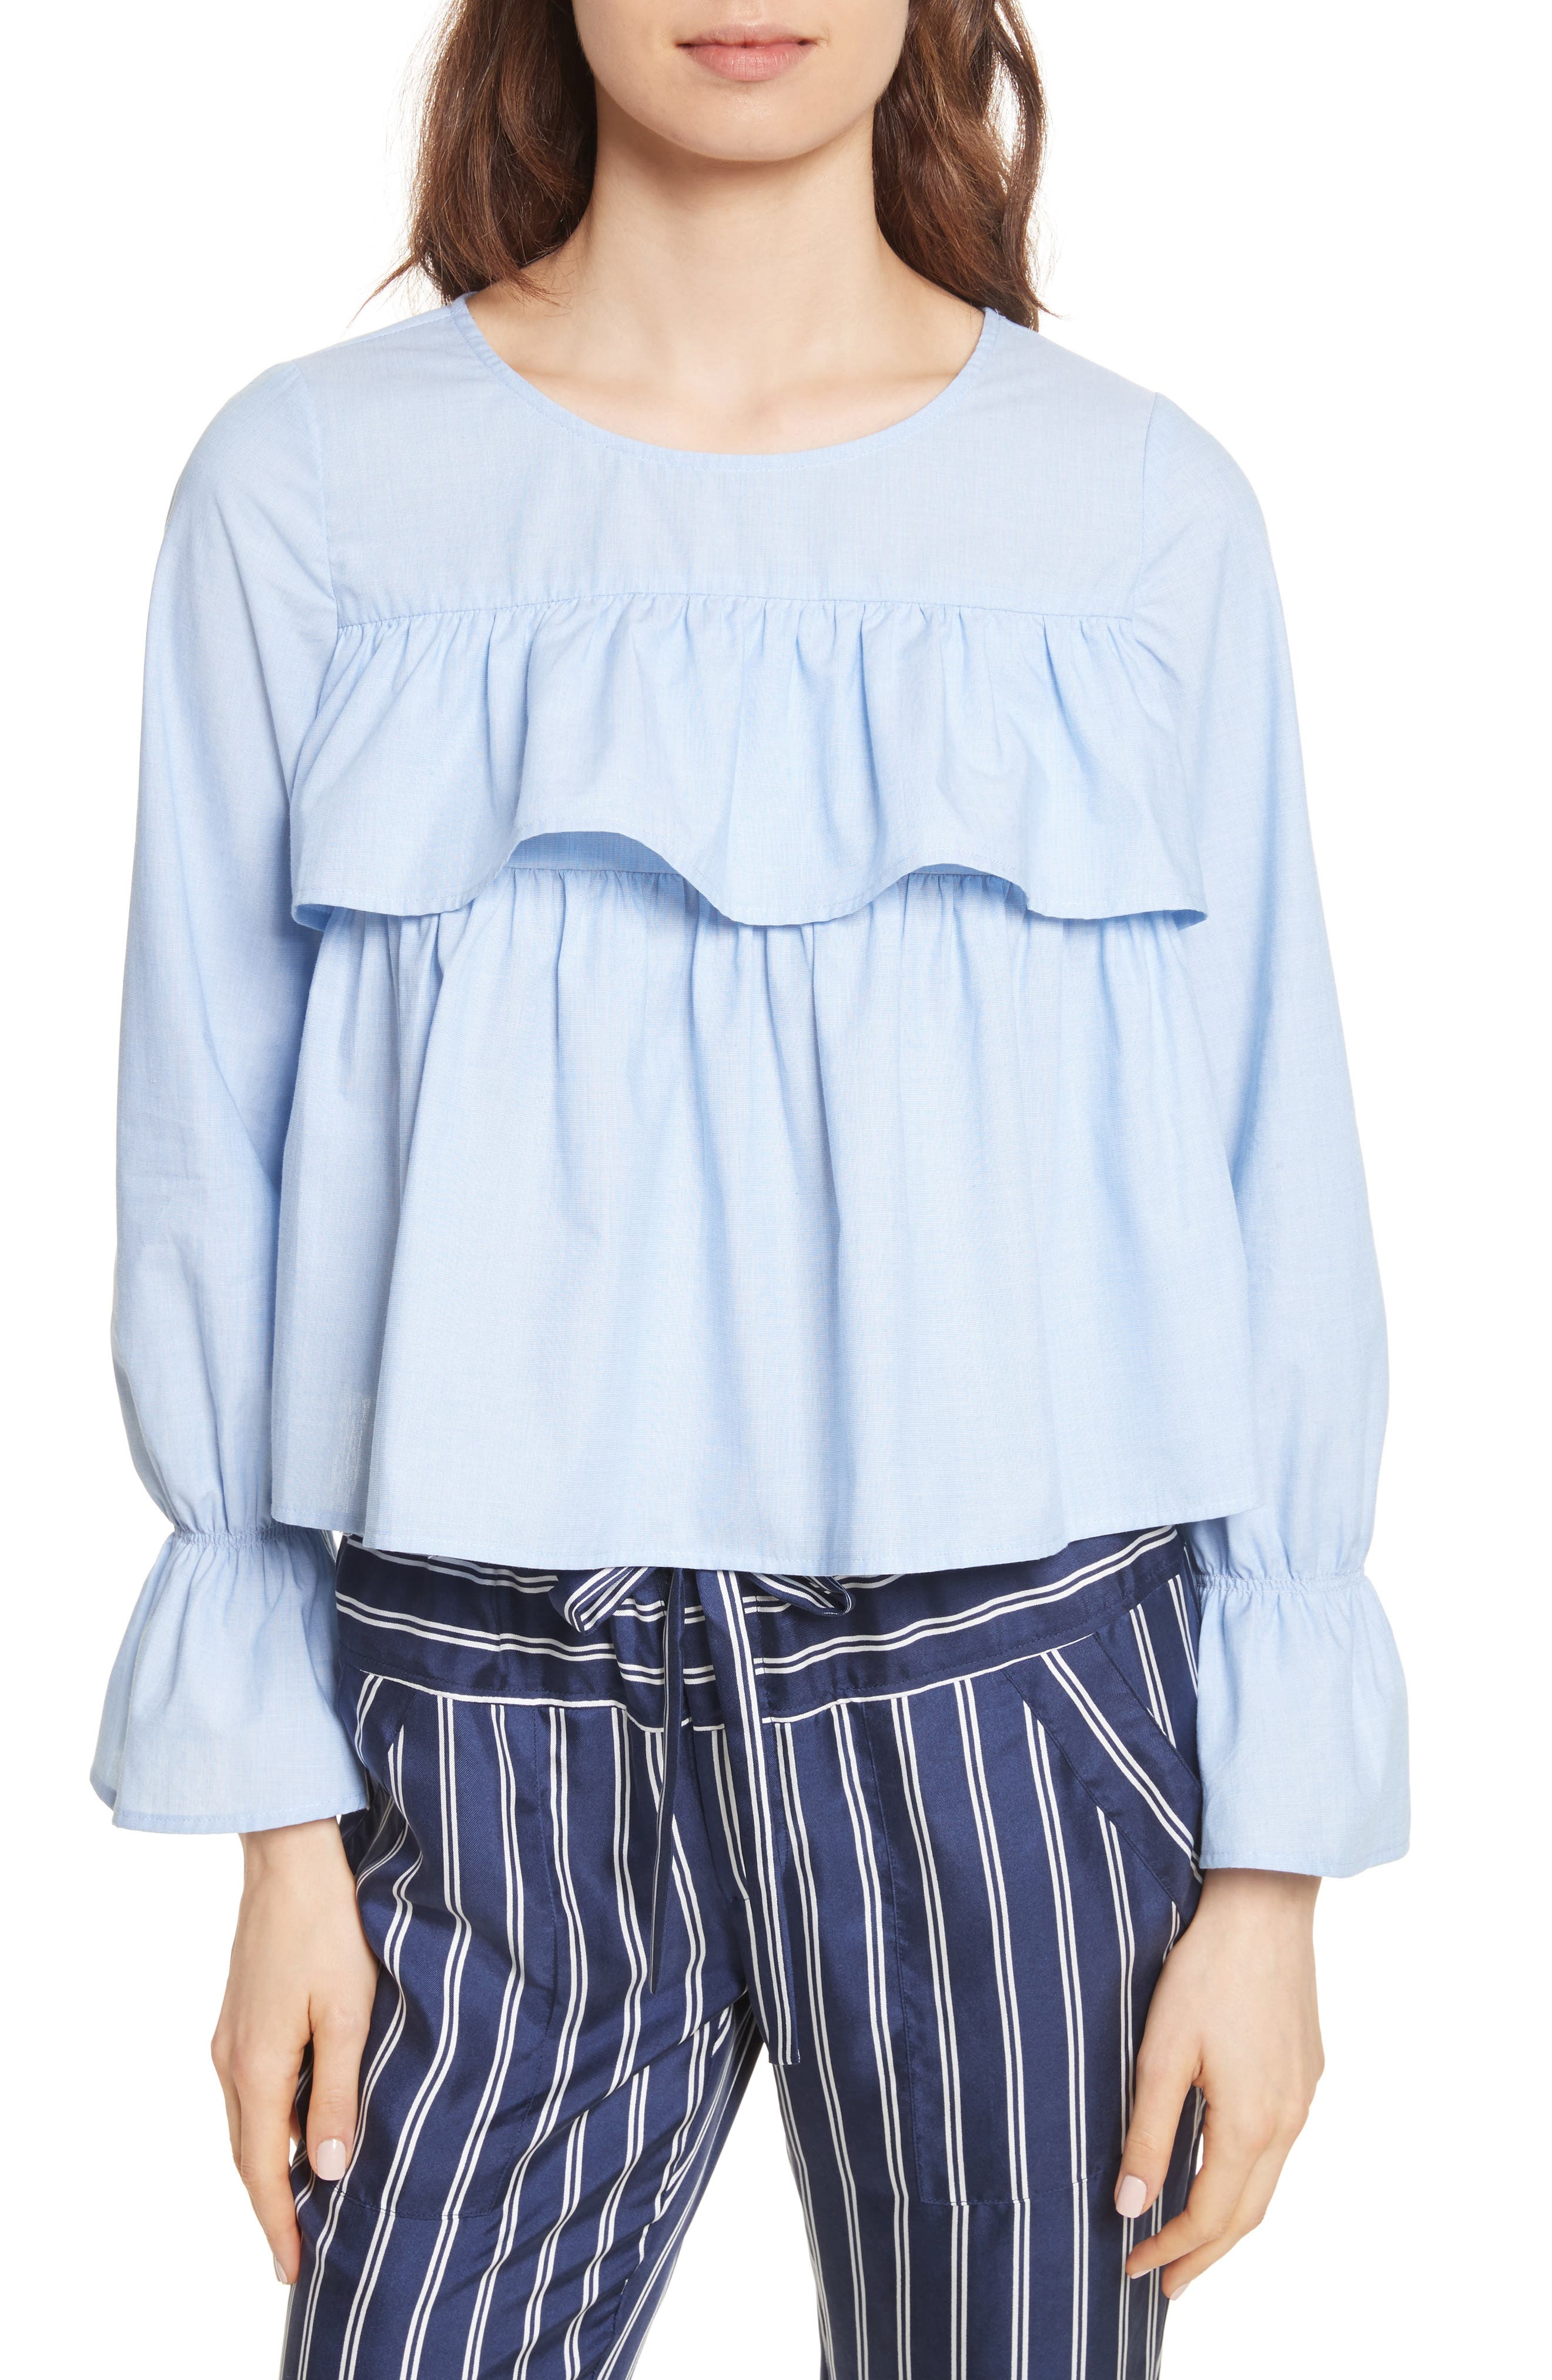 Adotte Cotton Top,                             Main thumbnail 1, color,                             Maritime Chambray